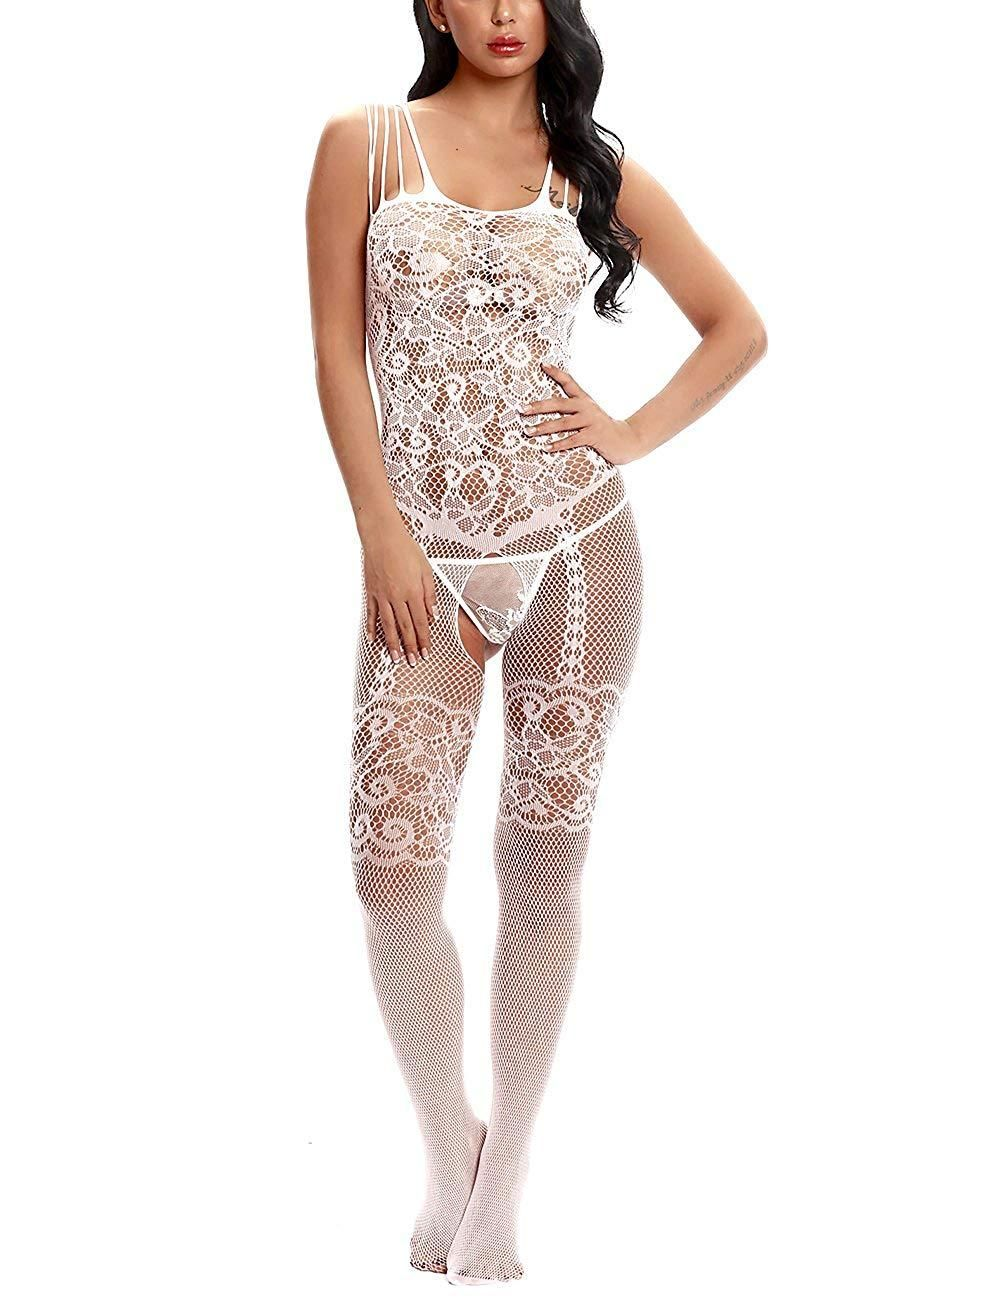 870c45f89 Vextronic Crotchless Bodystocking